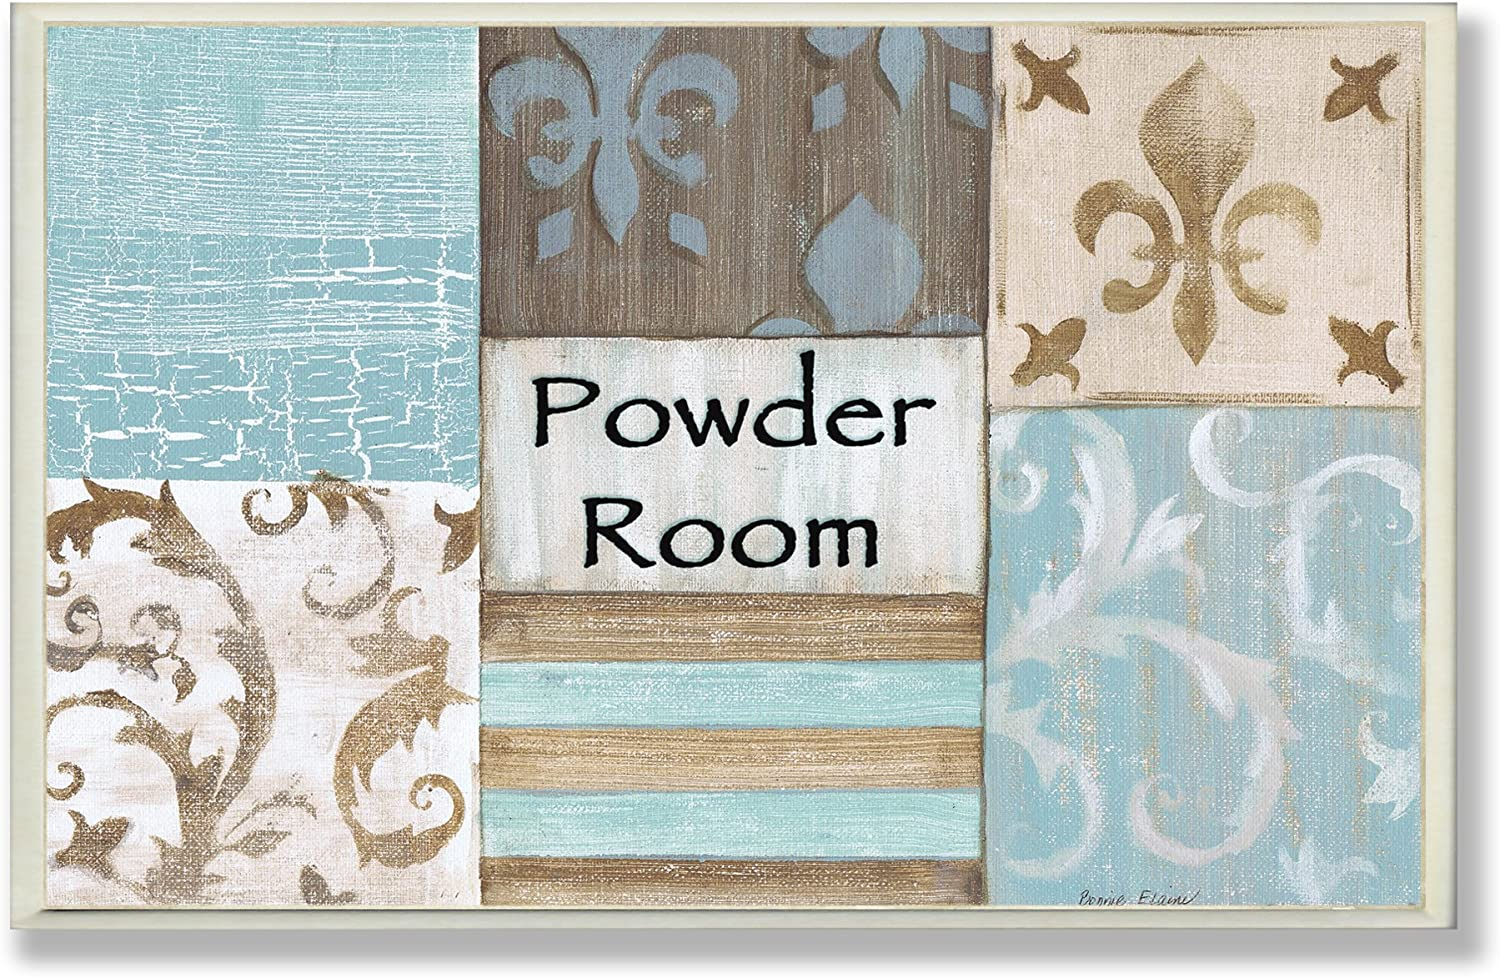 Stupell Industries The Stupell Home Decor Collection Fleur de Lis Powder Room Blue, Brown and Beige Bathroom Wall Plaque, 13 x 19, Design by Artist Bonnie Wrublesky